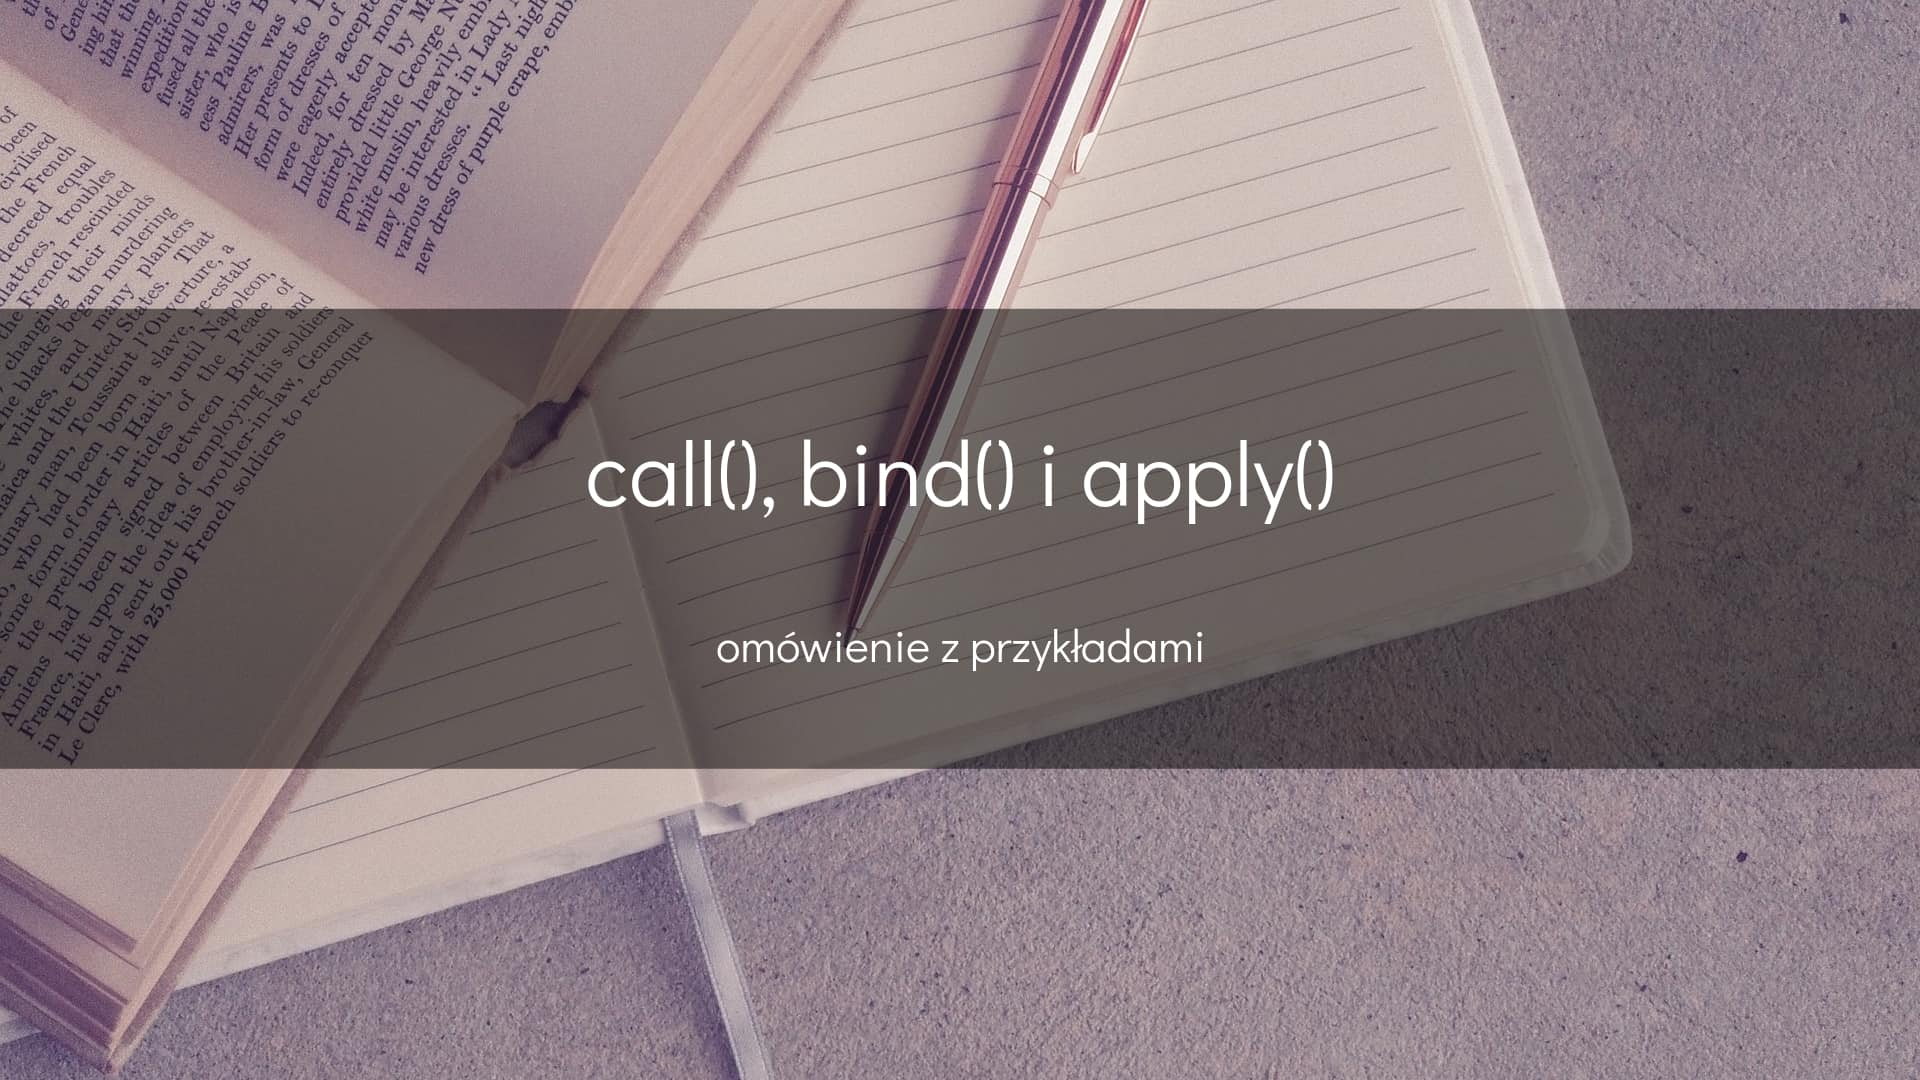 Call bind apply - okładka